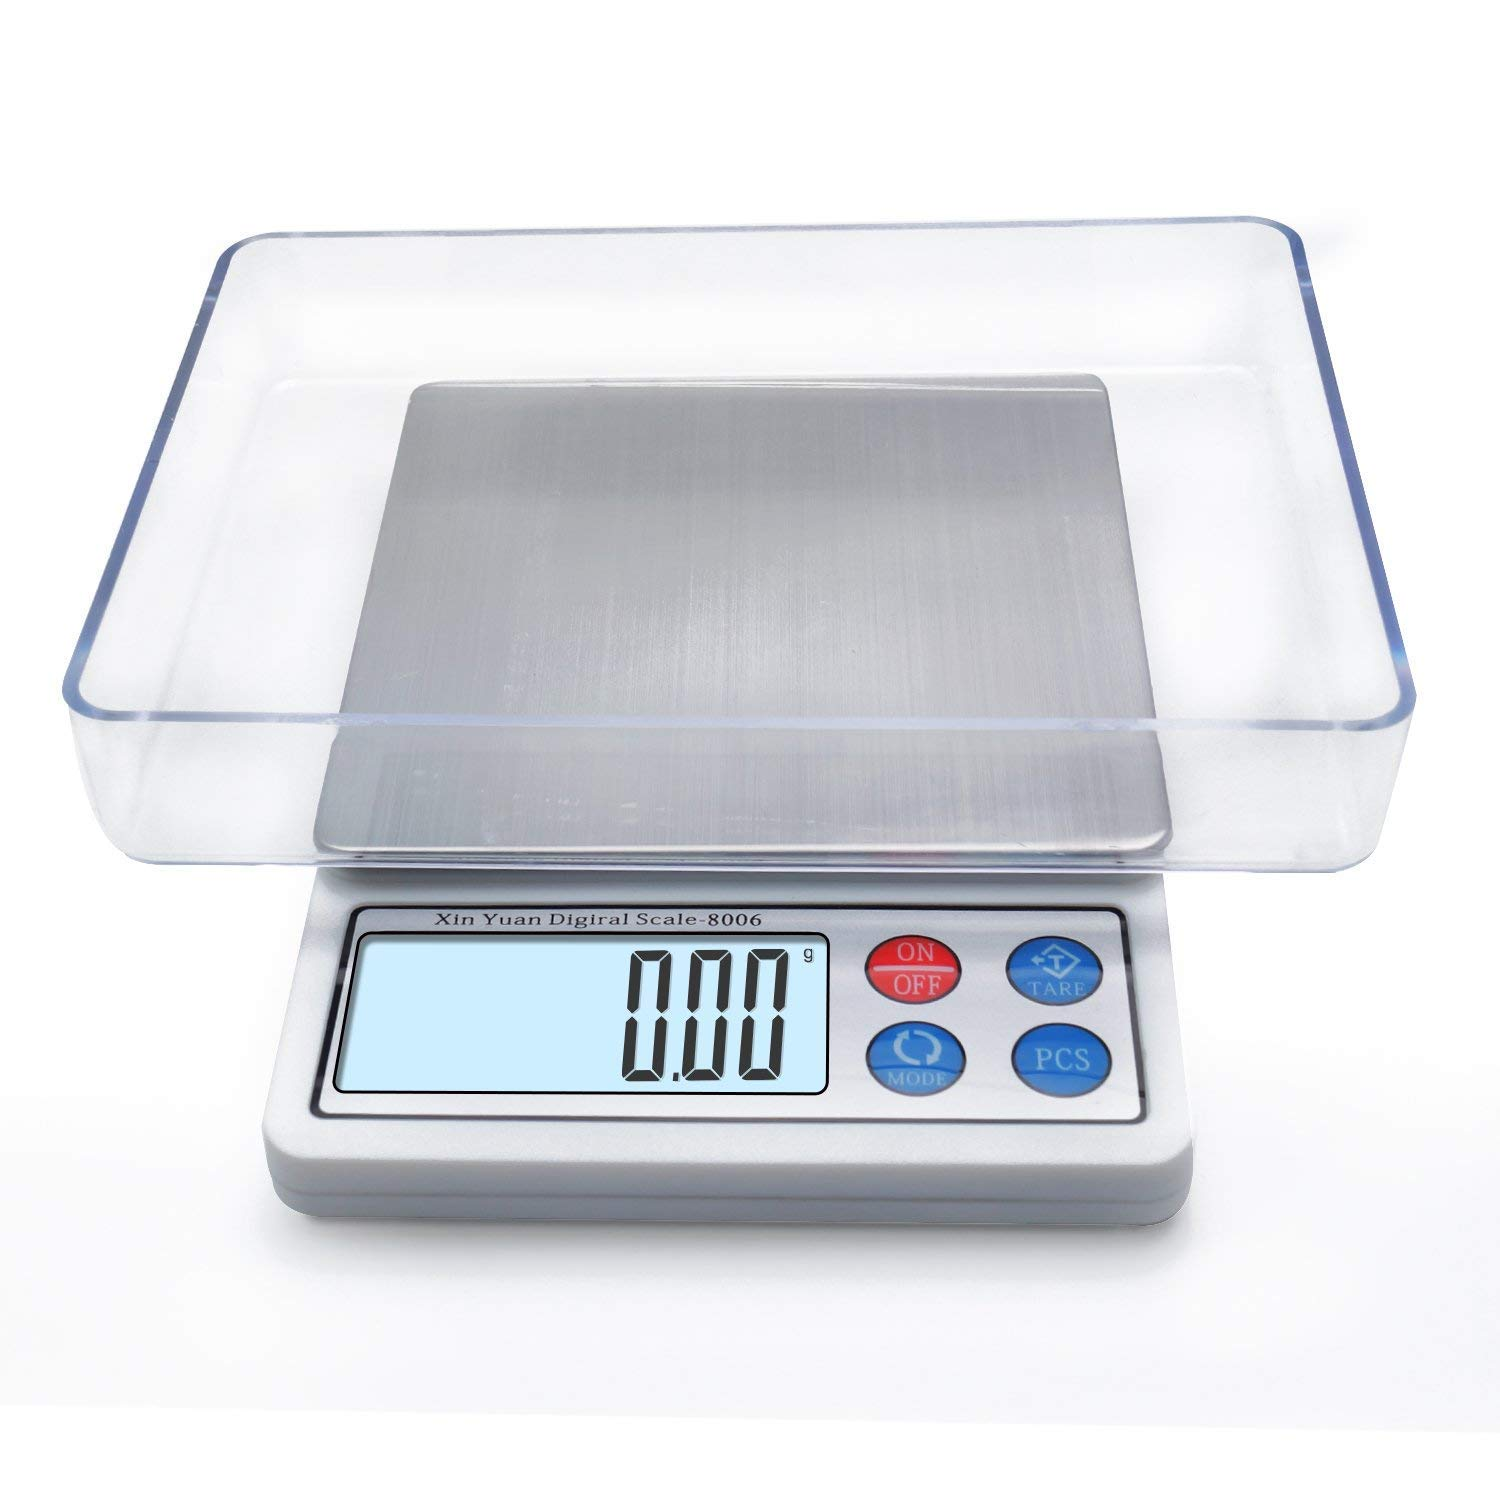 Toprime Digital Gram Scale, Mini Size Food Scale 600g x 0.01g, High Precision Pocket Scale with LCD display and 1 Tray, Stainless Steel, PCS, Convert Unit - White